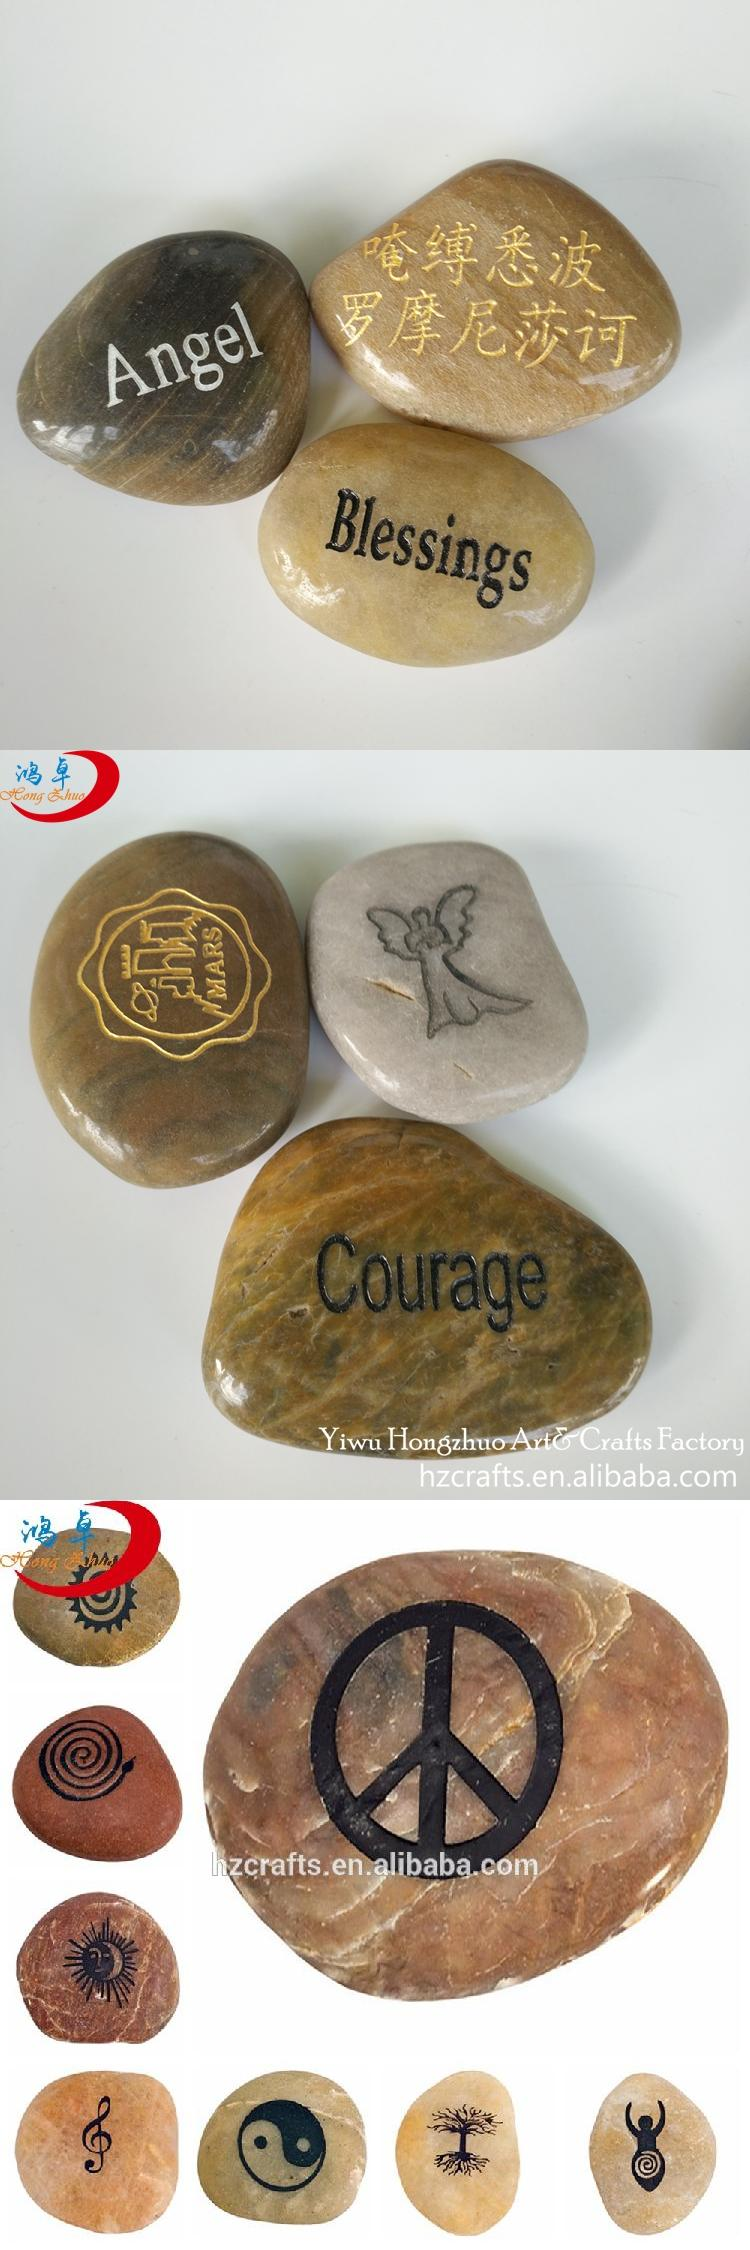 Inspirational amulets encouragement guardian blessings etched lettering pebble stones